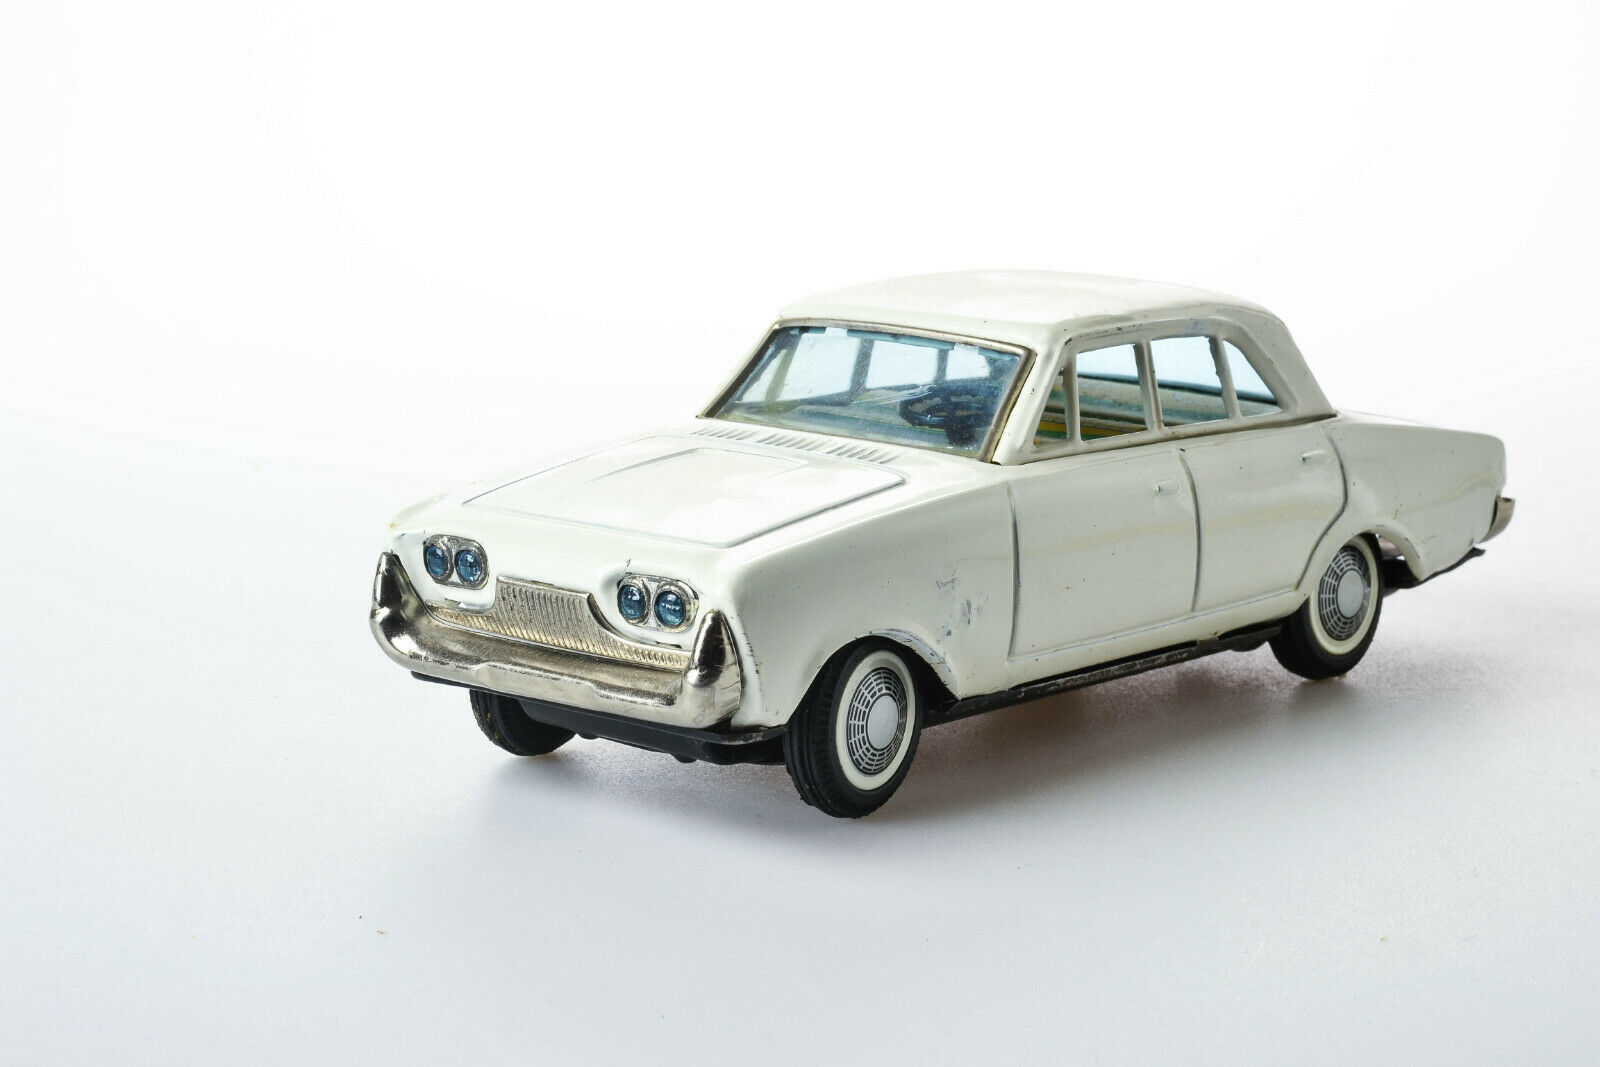 Antique Tin ToyRare ToyRare ToyRare Bandai 1960 Battery Ford Taunus 17M Passenger Car Japan cd9c45